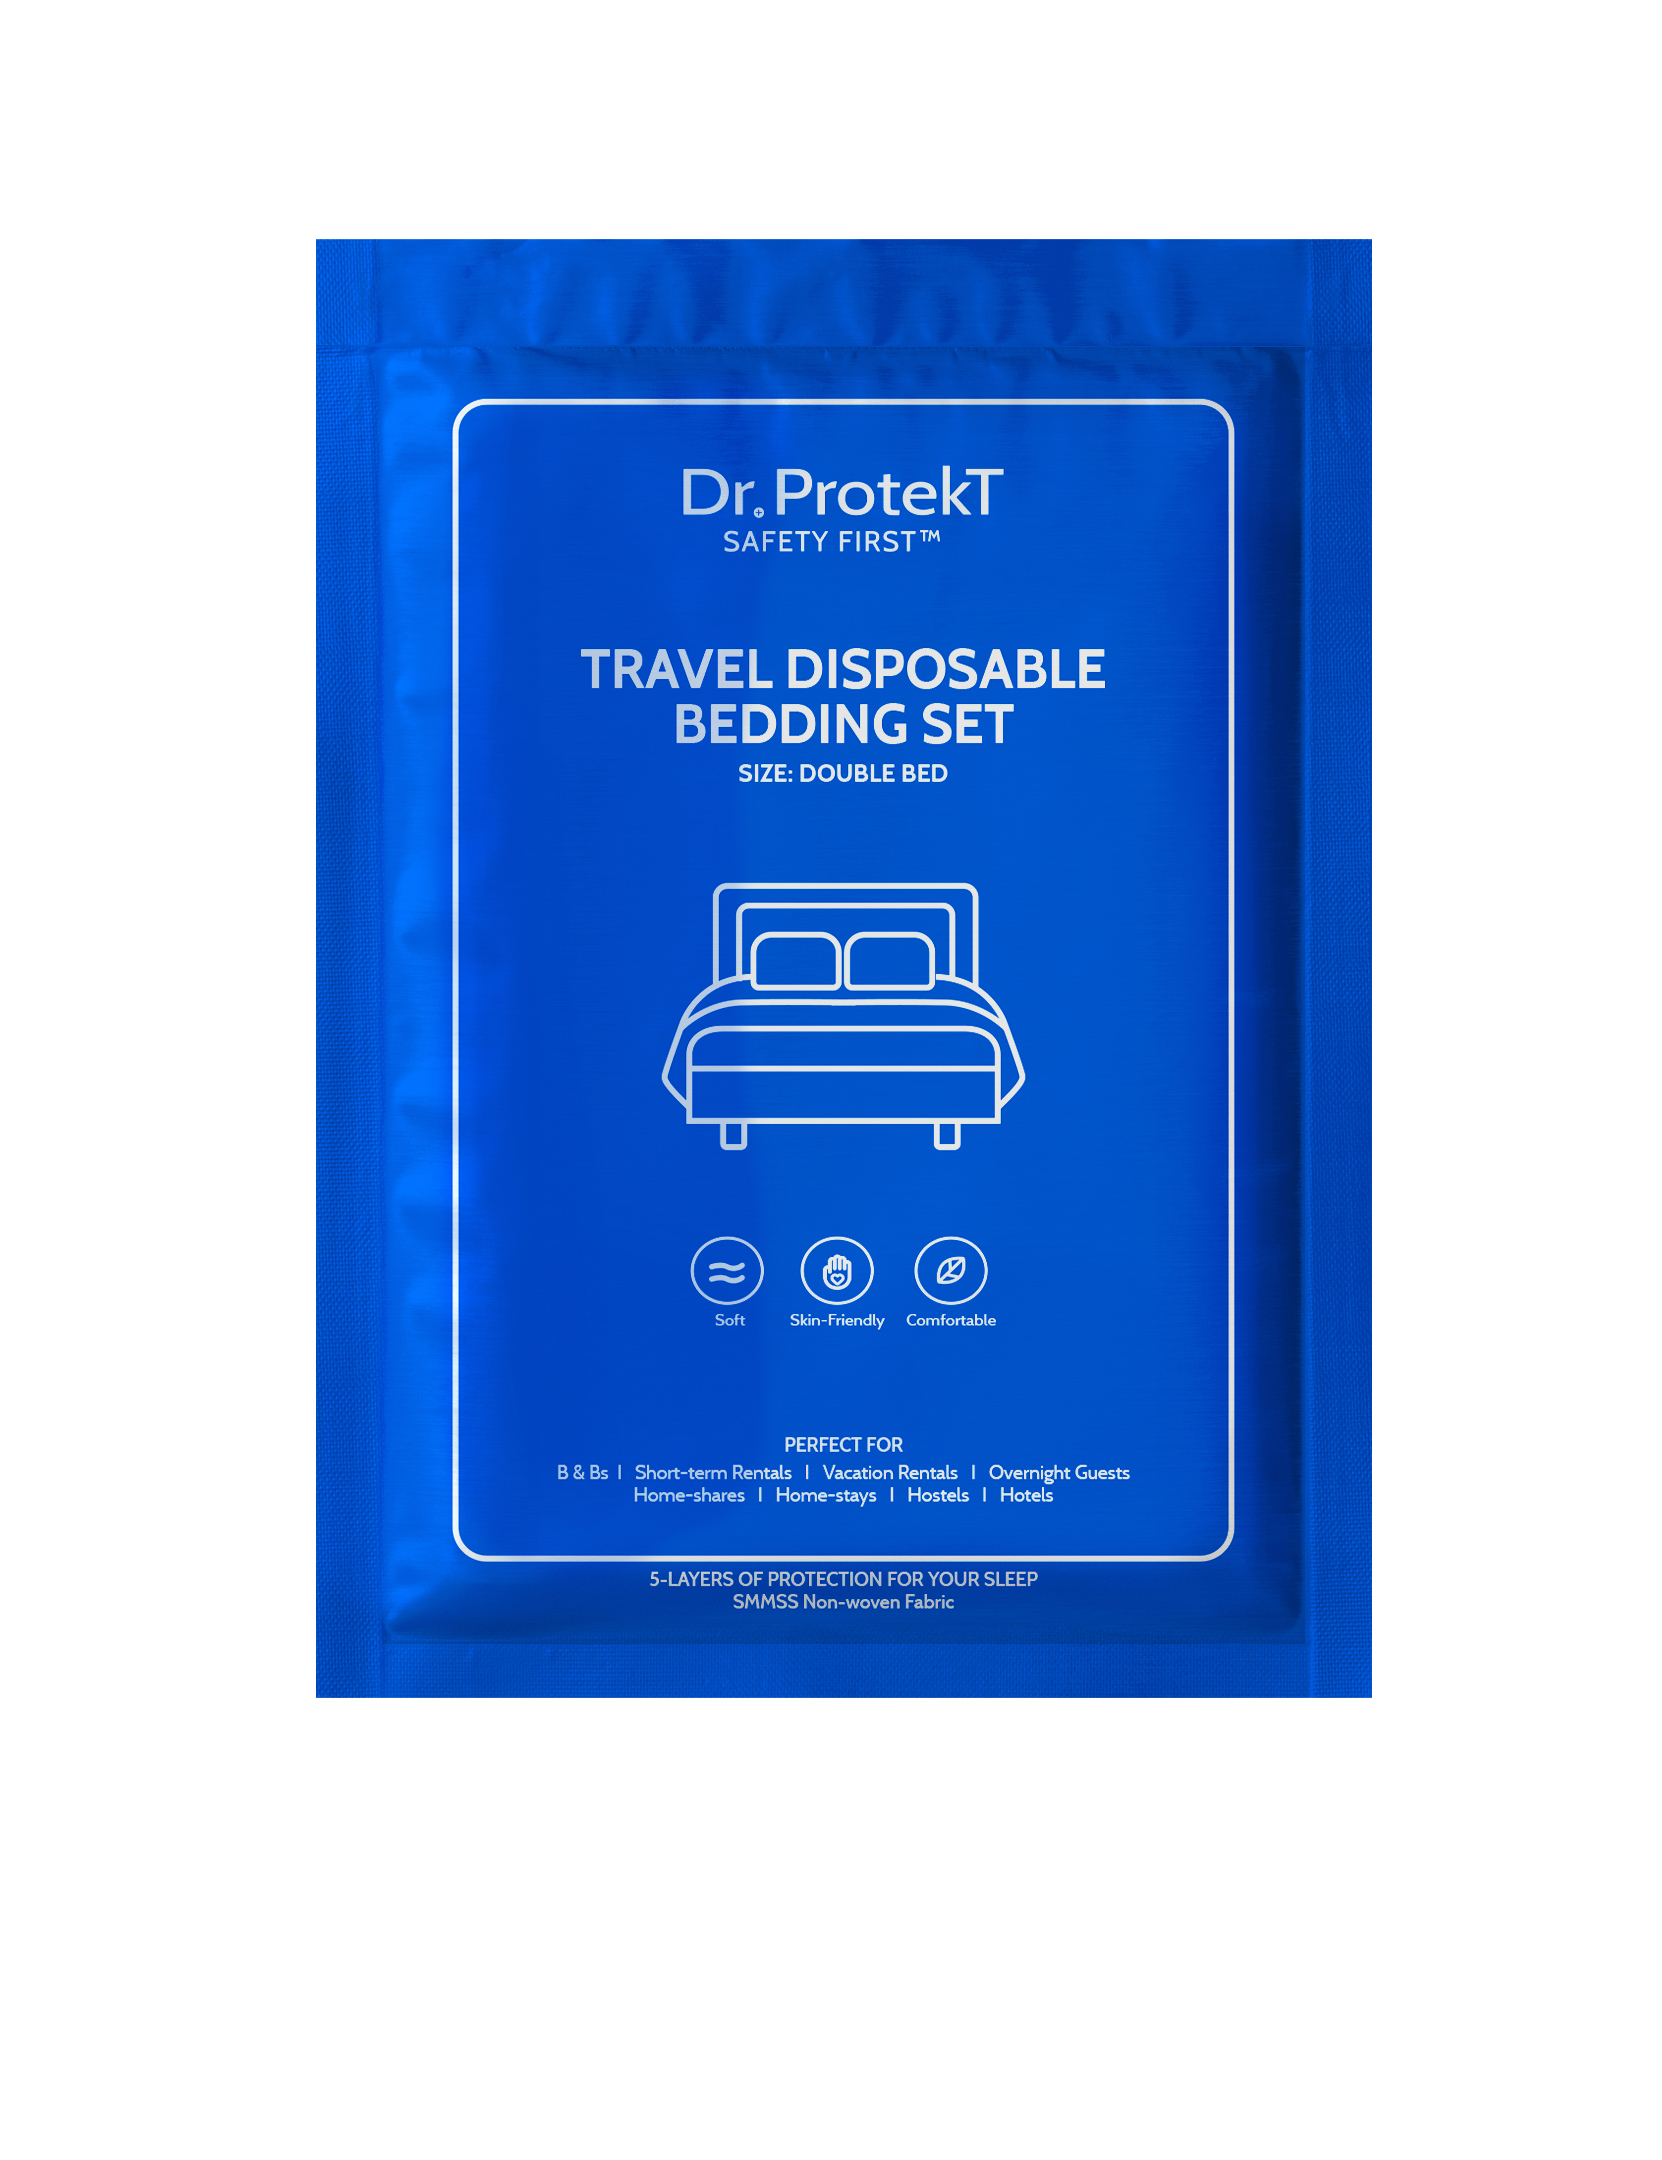 TRAVEL DISPOSABLE BEDDING SET